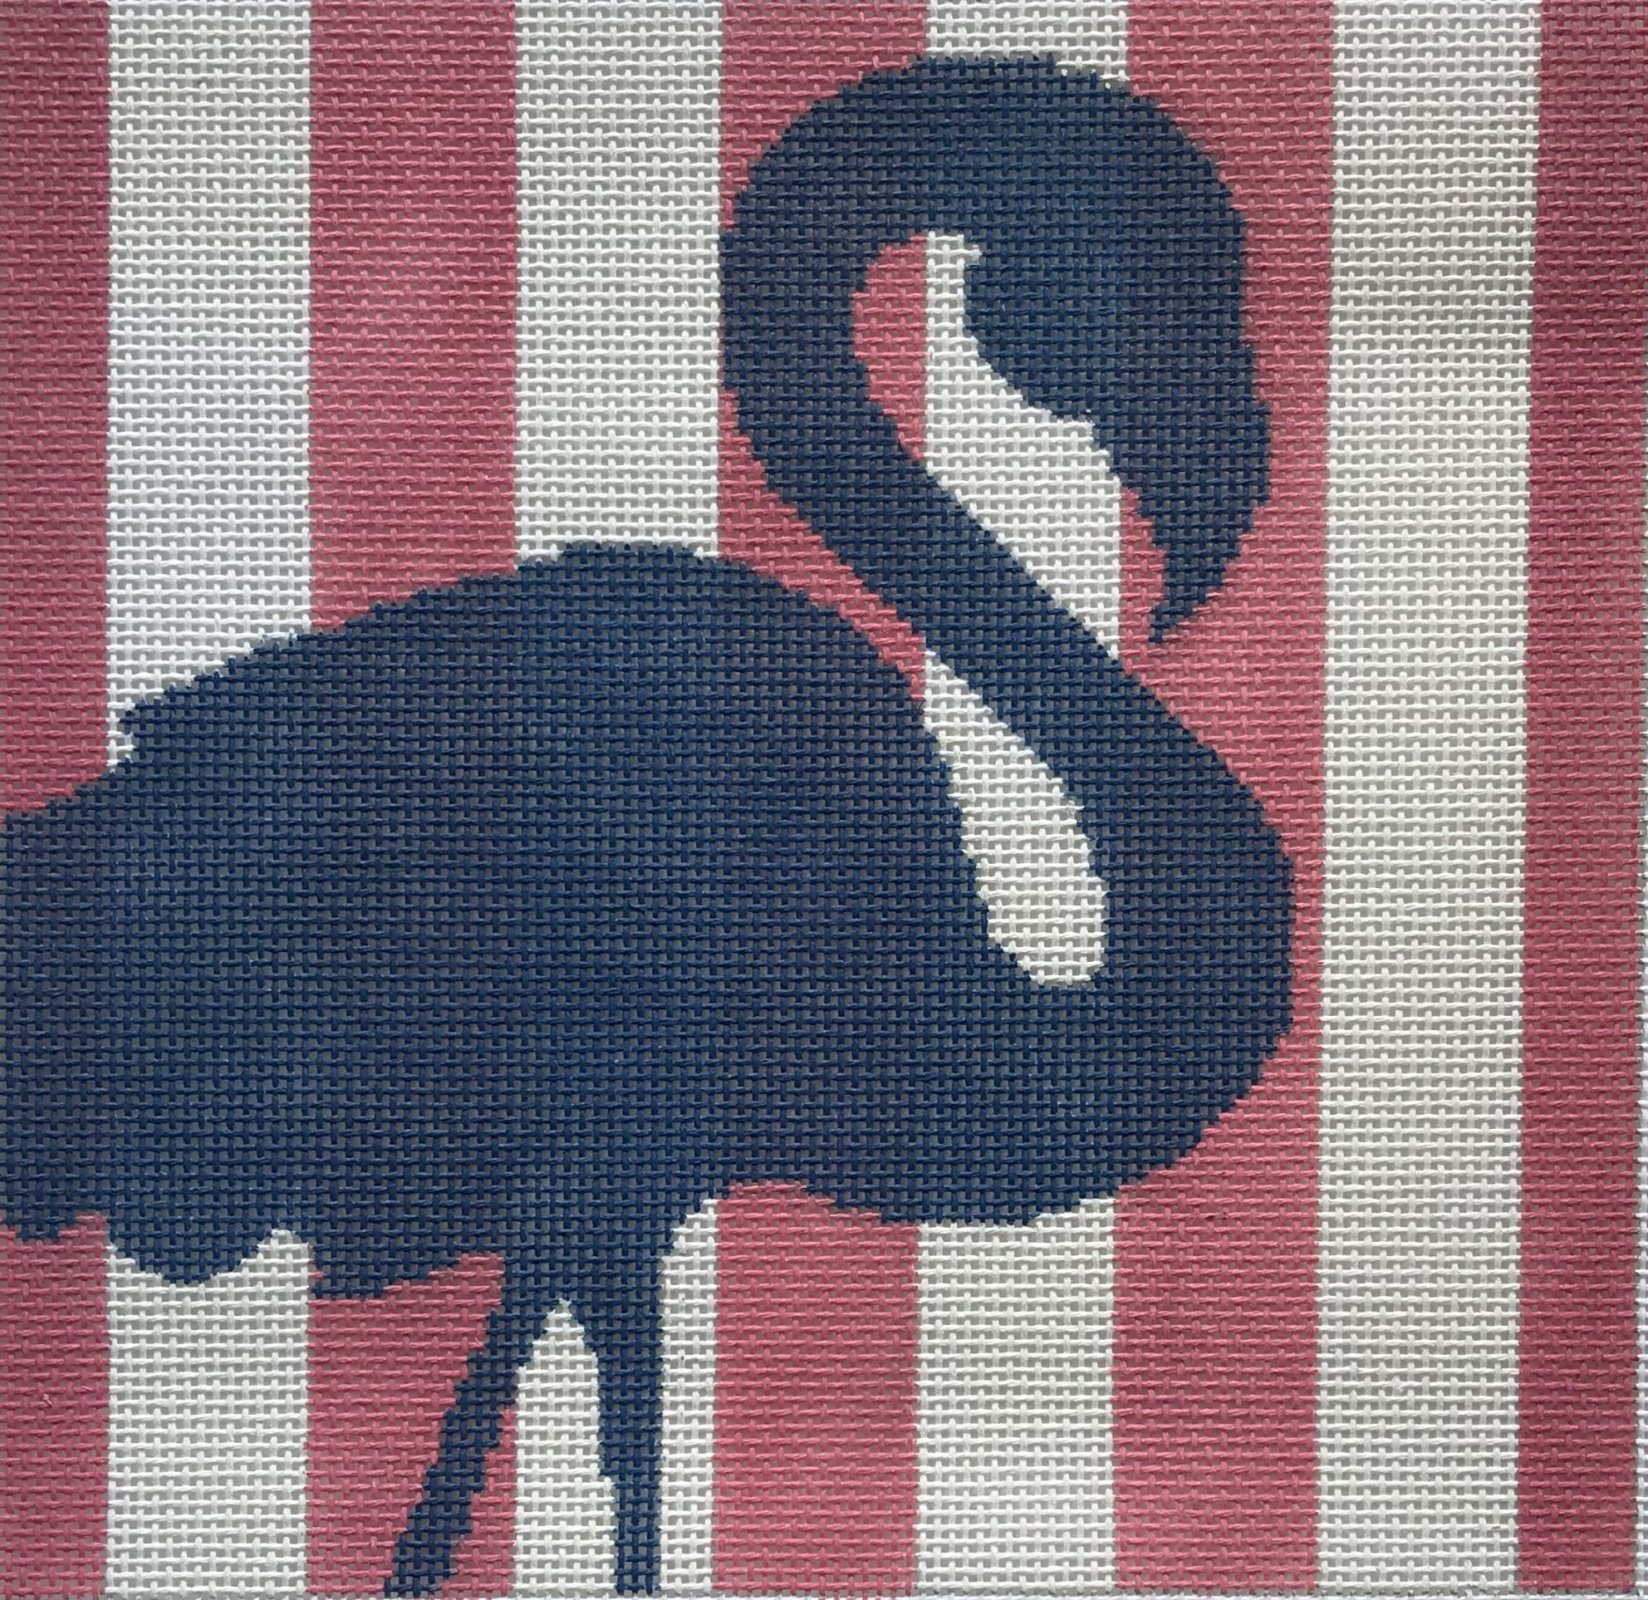 Flamingo Stencil - Hot Pink